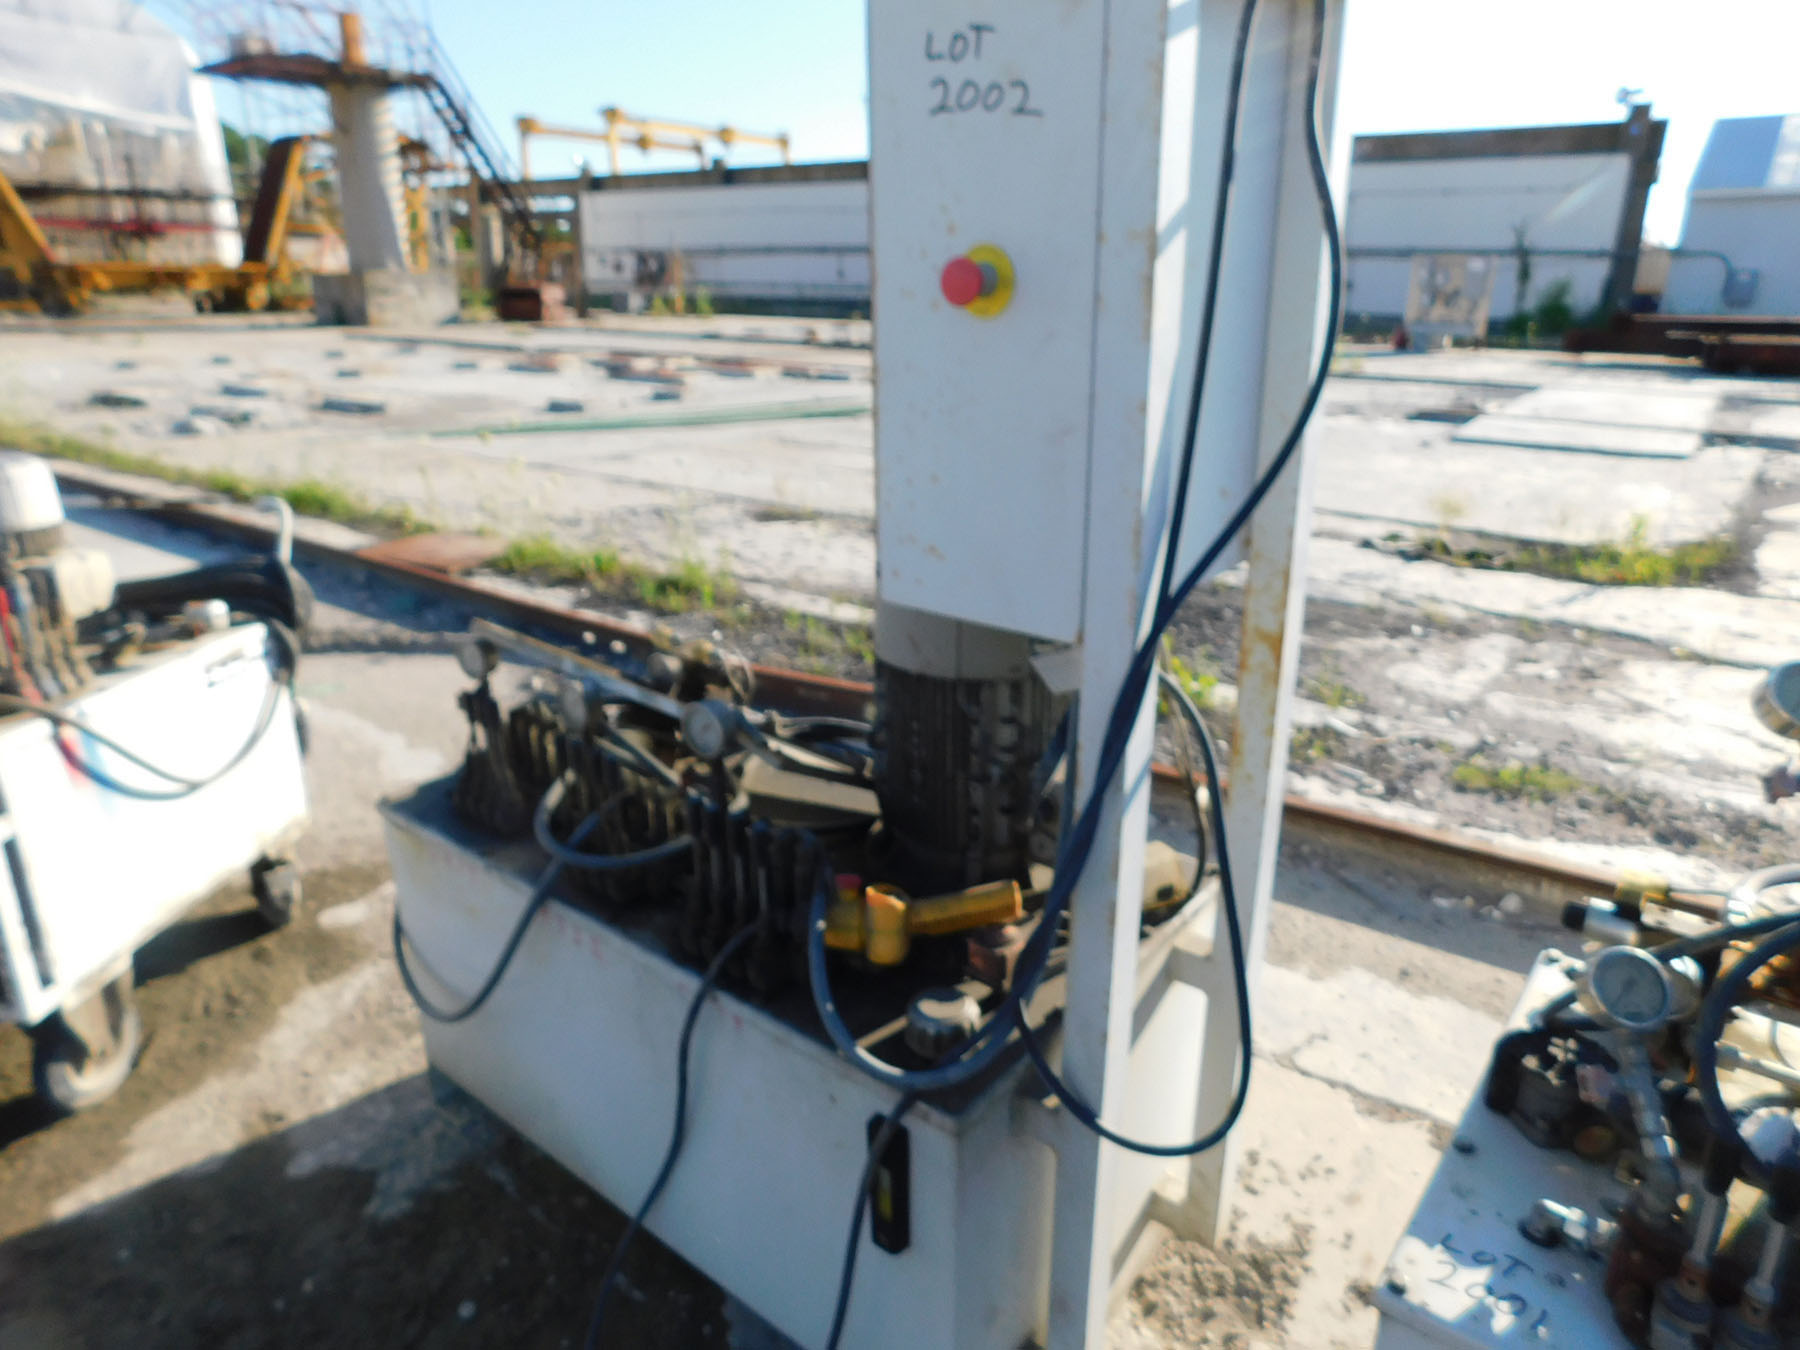 Lot 2002 - 2014 RAMA FLUID HYDRAULIC POWER SYSTEM